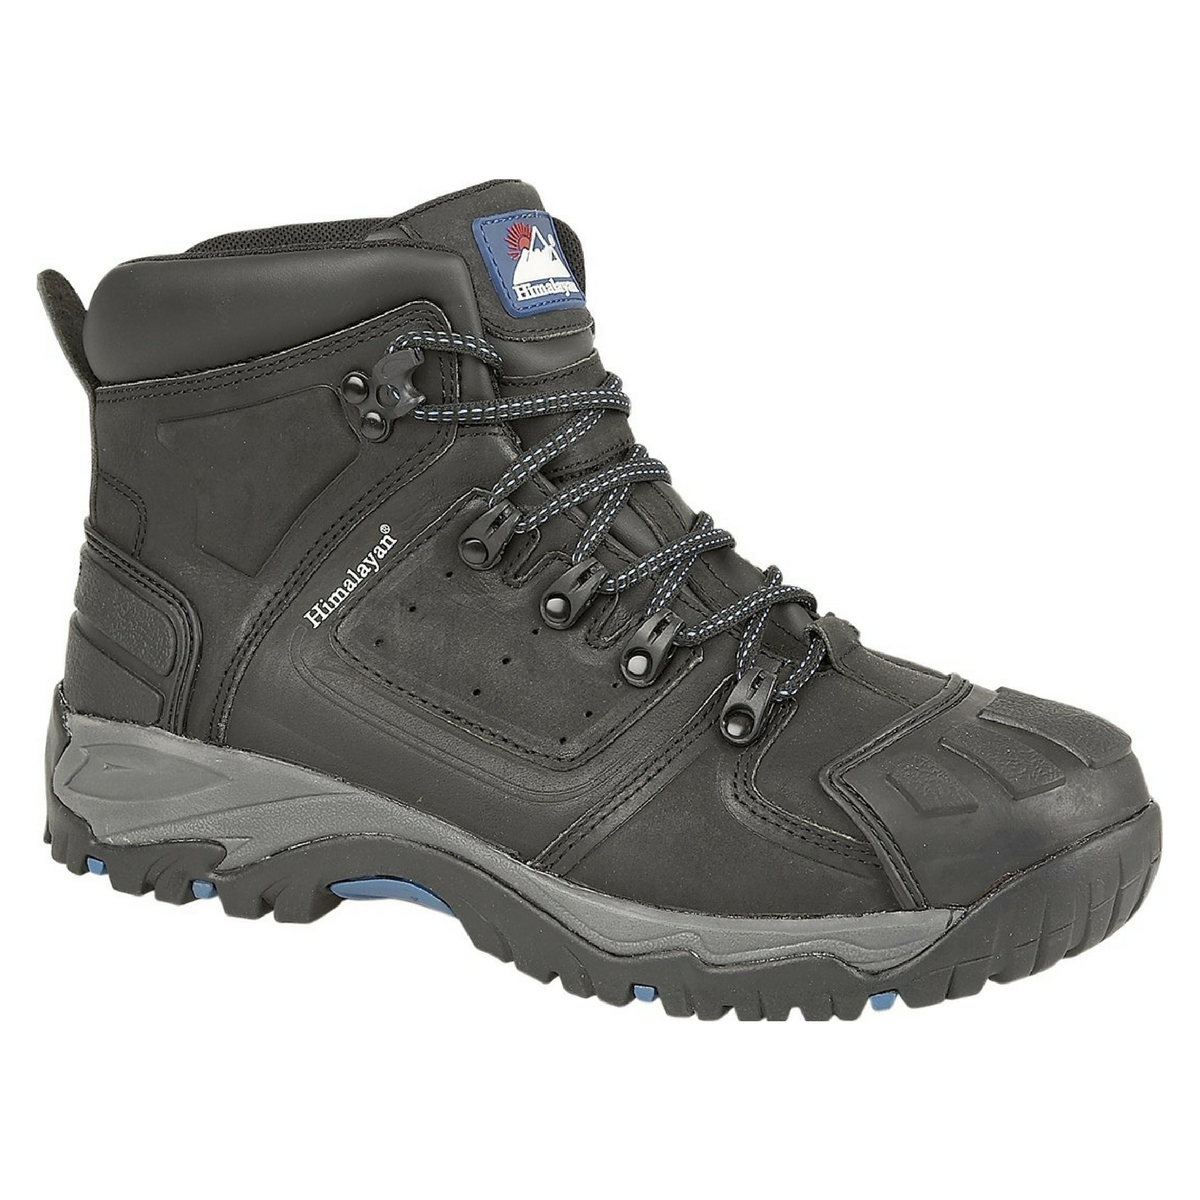 8b2187b7a85 HIMALAYAN wasterproof Safety BOOTs w Steel Toe Cap